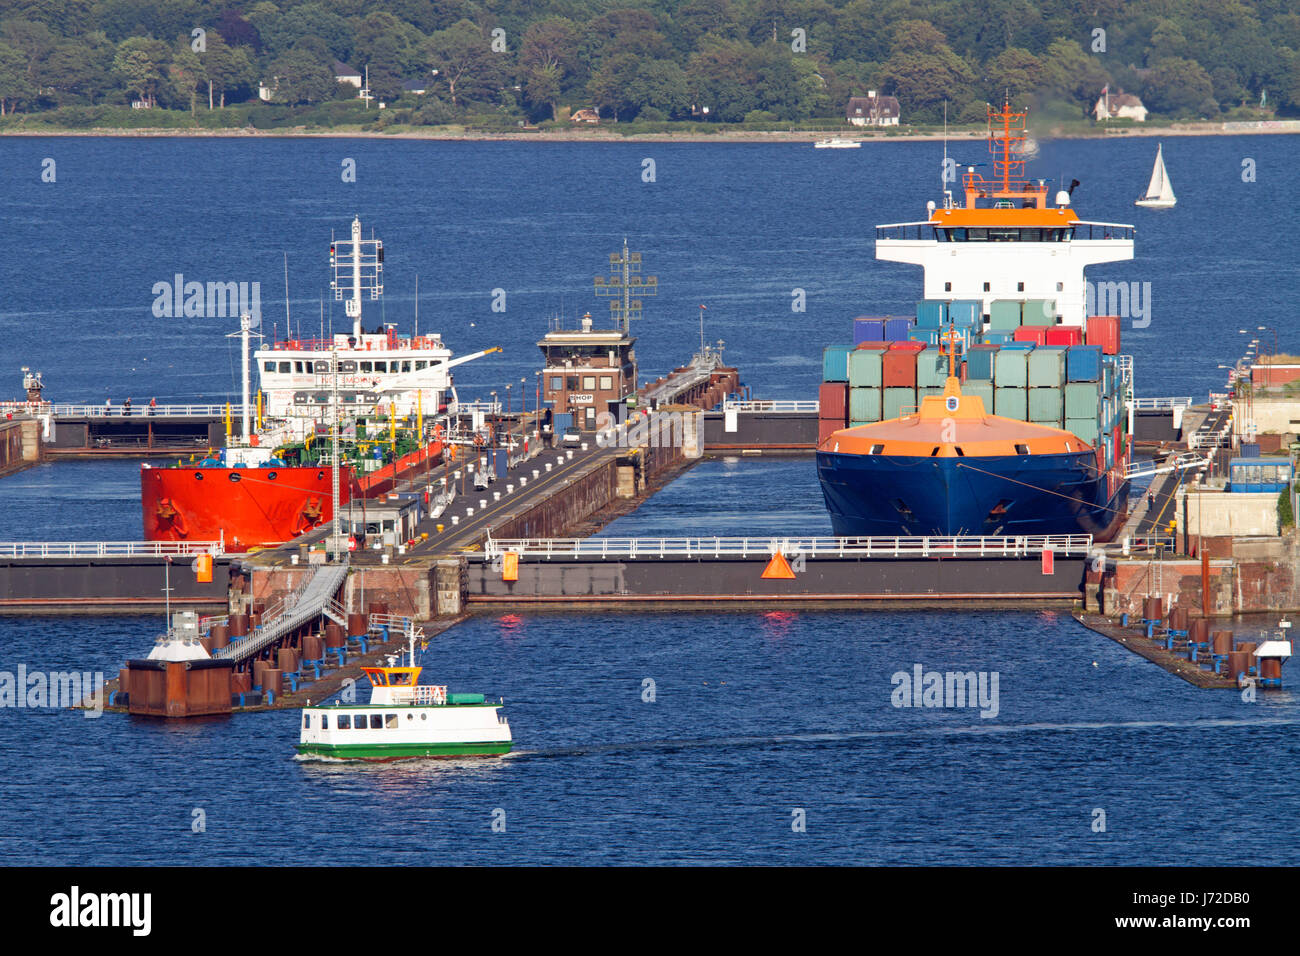 ships in the sluice holtenau to kiel canal,kiel Stock Photo